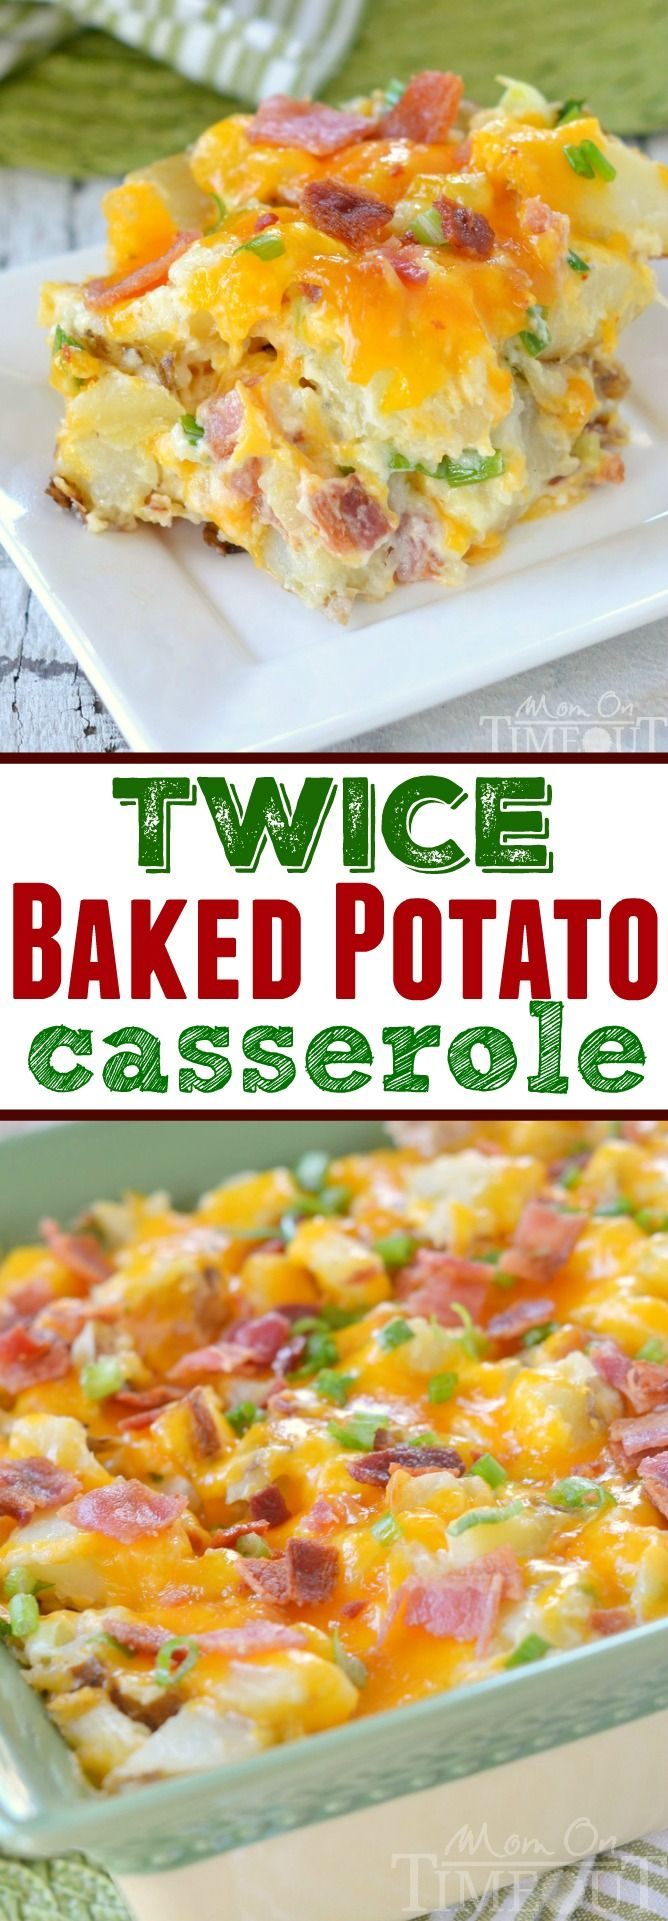 There's nothing more comforting than twice baked potatoes - unless you turn them into a casserole!